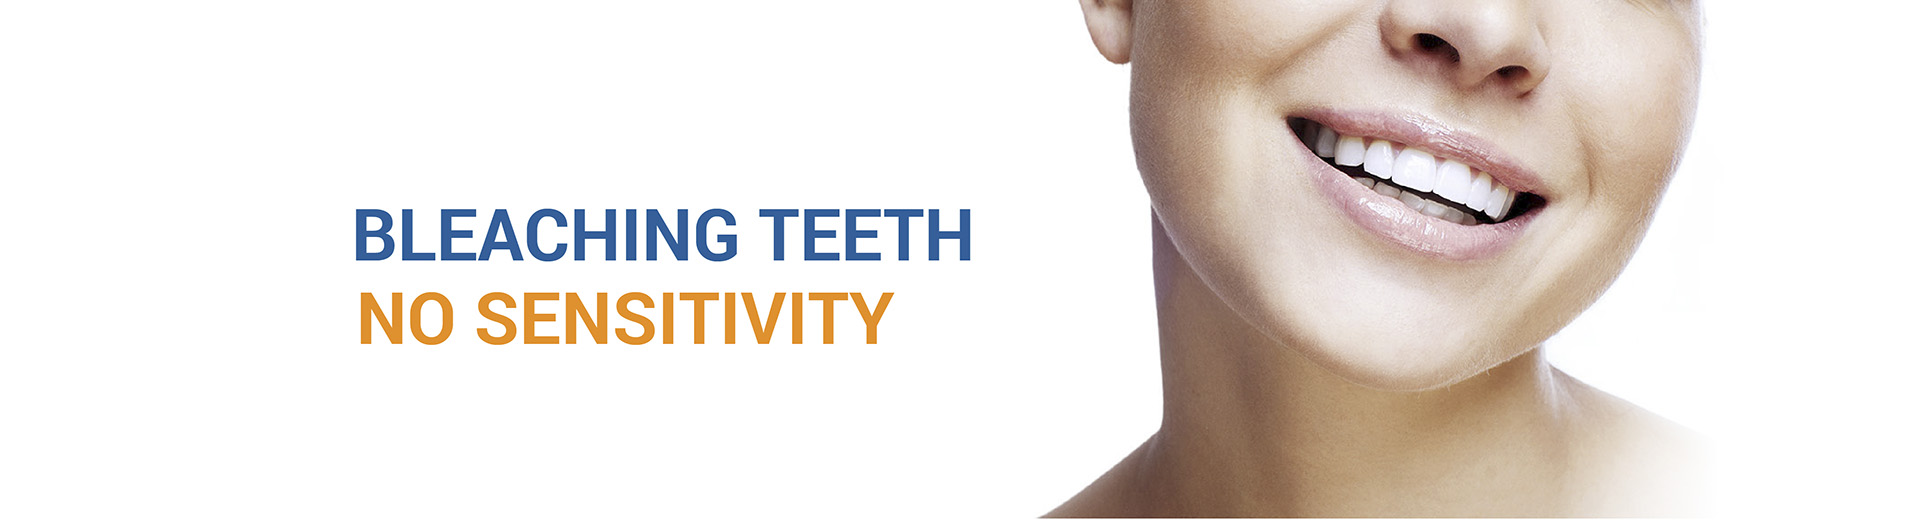 Teeth whitening for smile